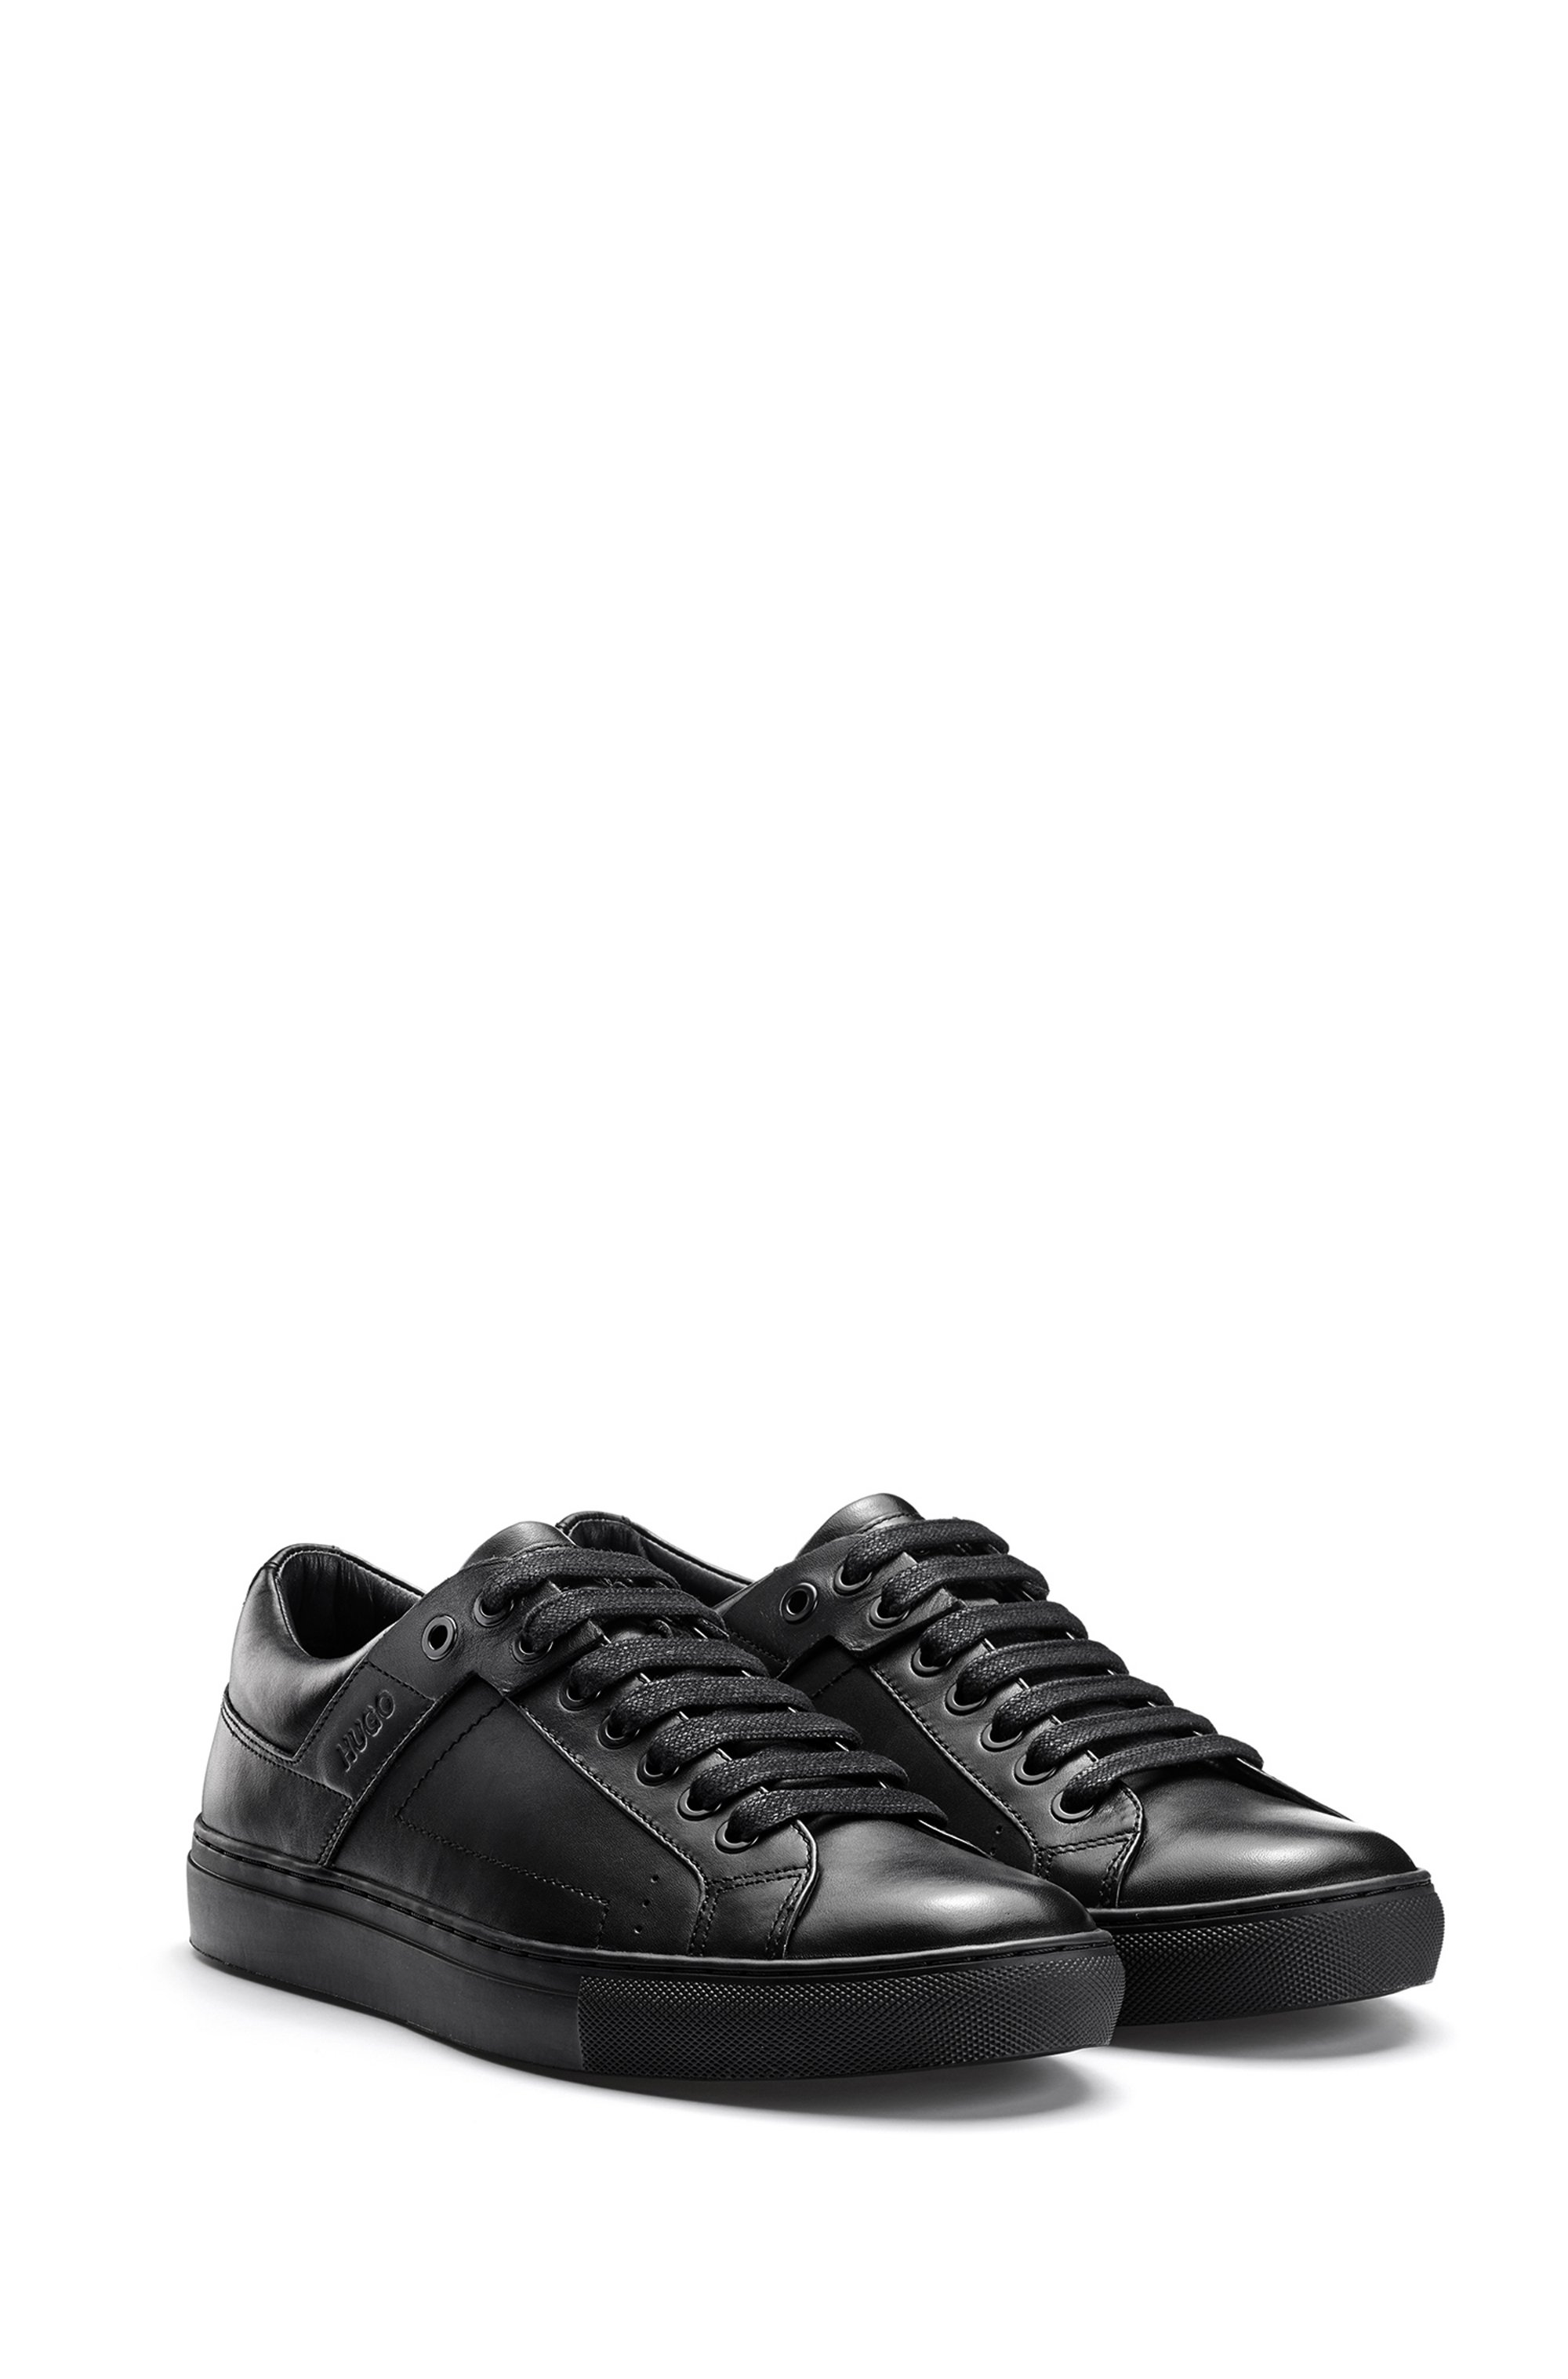 Tennis-inspired trainers in nappa leather with rubber sole